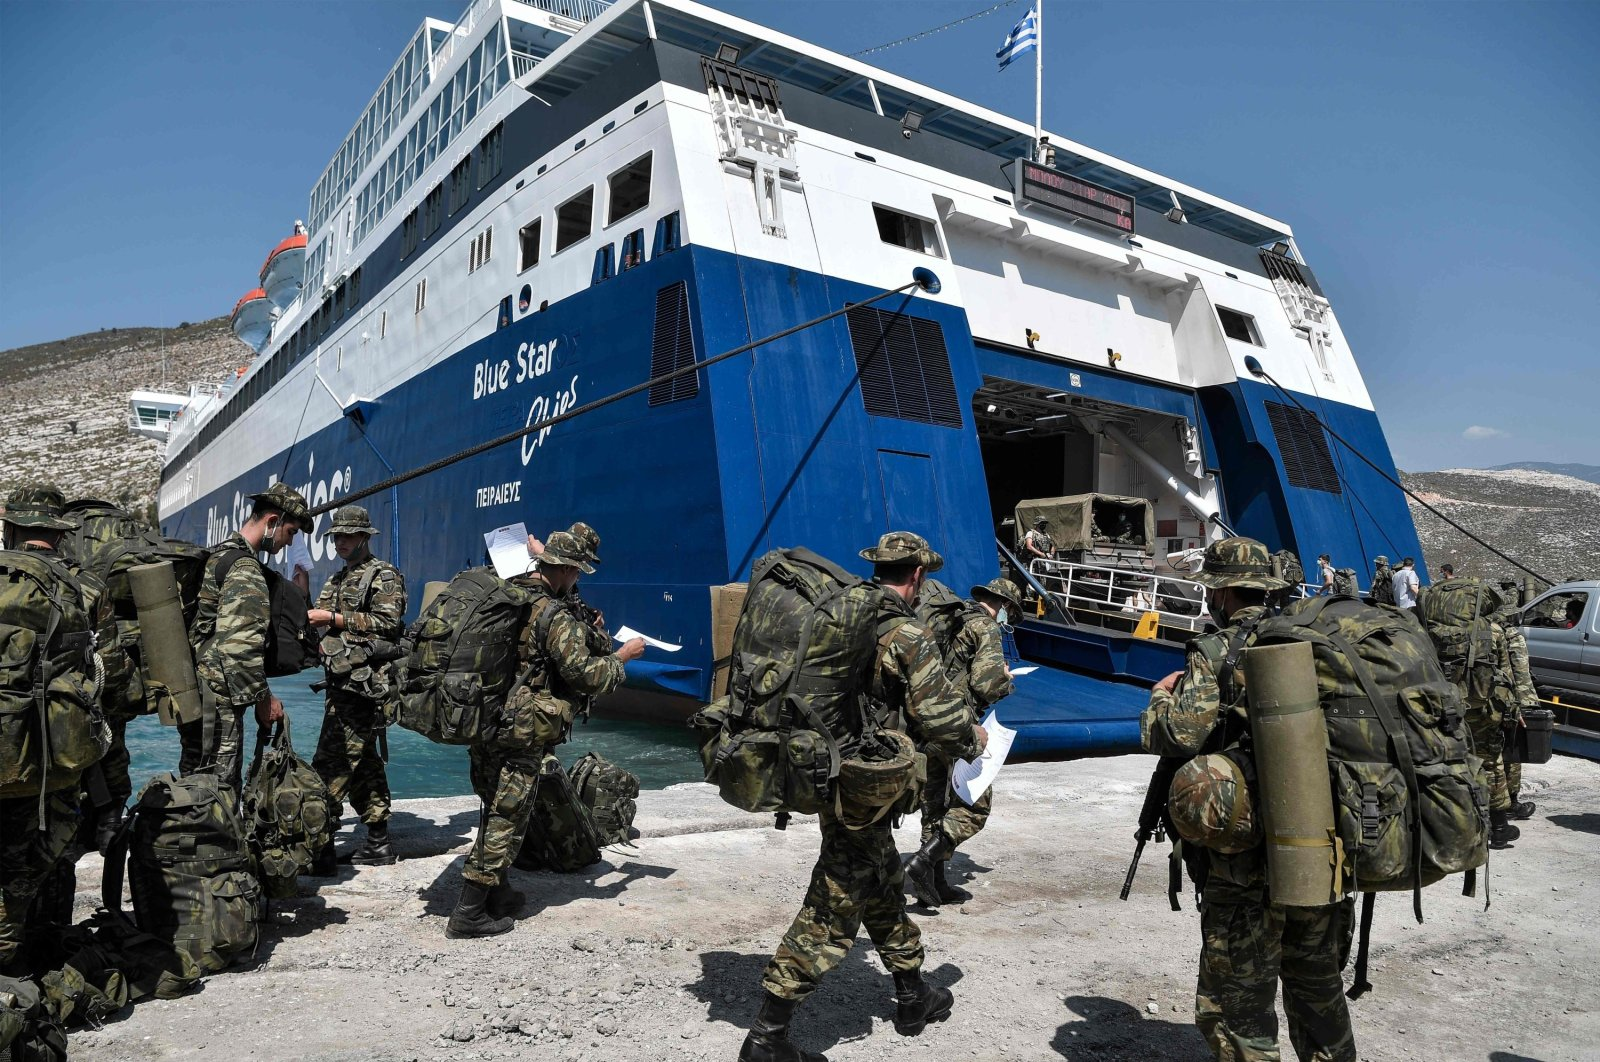 Greek soldiers prepare to board a ferry at the port of the tiny Greek island of Kastellorizo (Megisti-Meis), the southeasternmost inhabited Greek island in the Dodecanese, situated 2 kilometers (1.2 miles) off the south coast of Turkey, in Kastellorizo, Greece, Aug. 31, 2020. (AFP Photo)